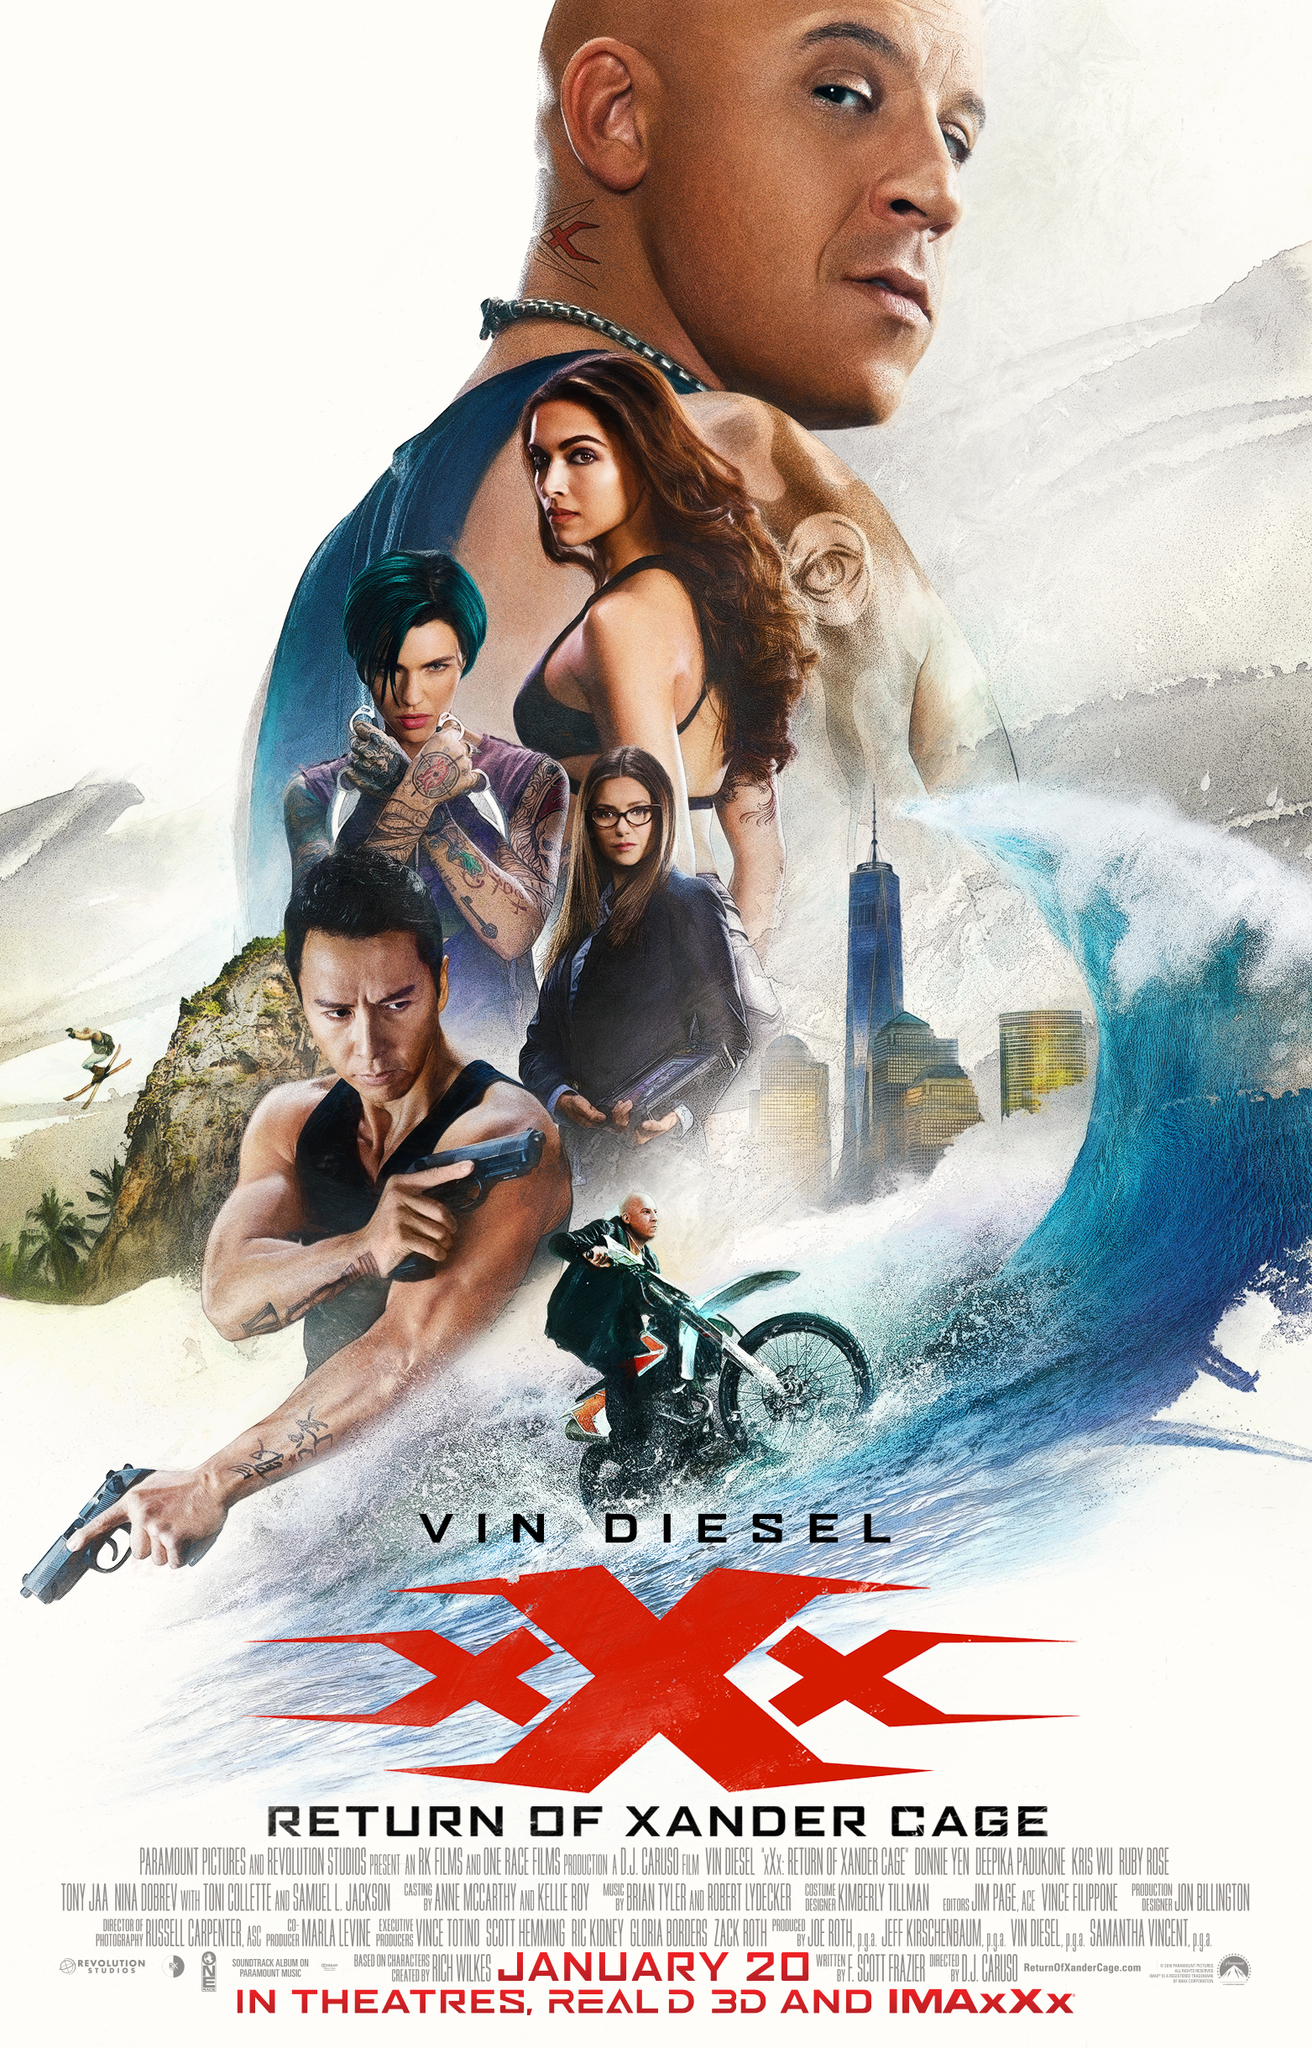 xXx: Return of Xander Cage kapak